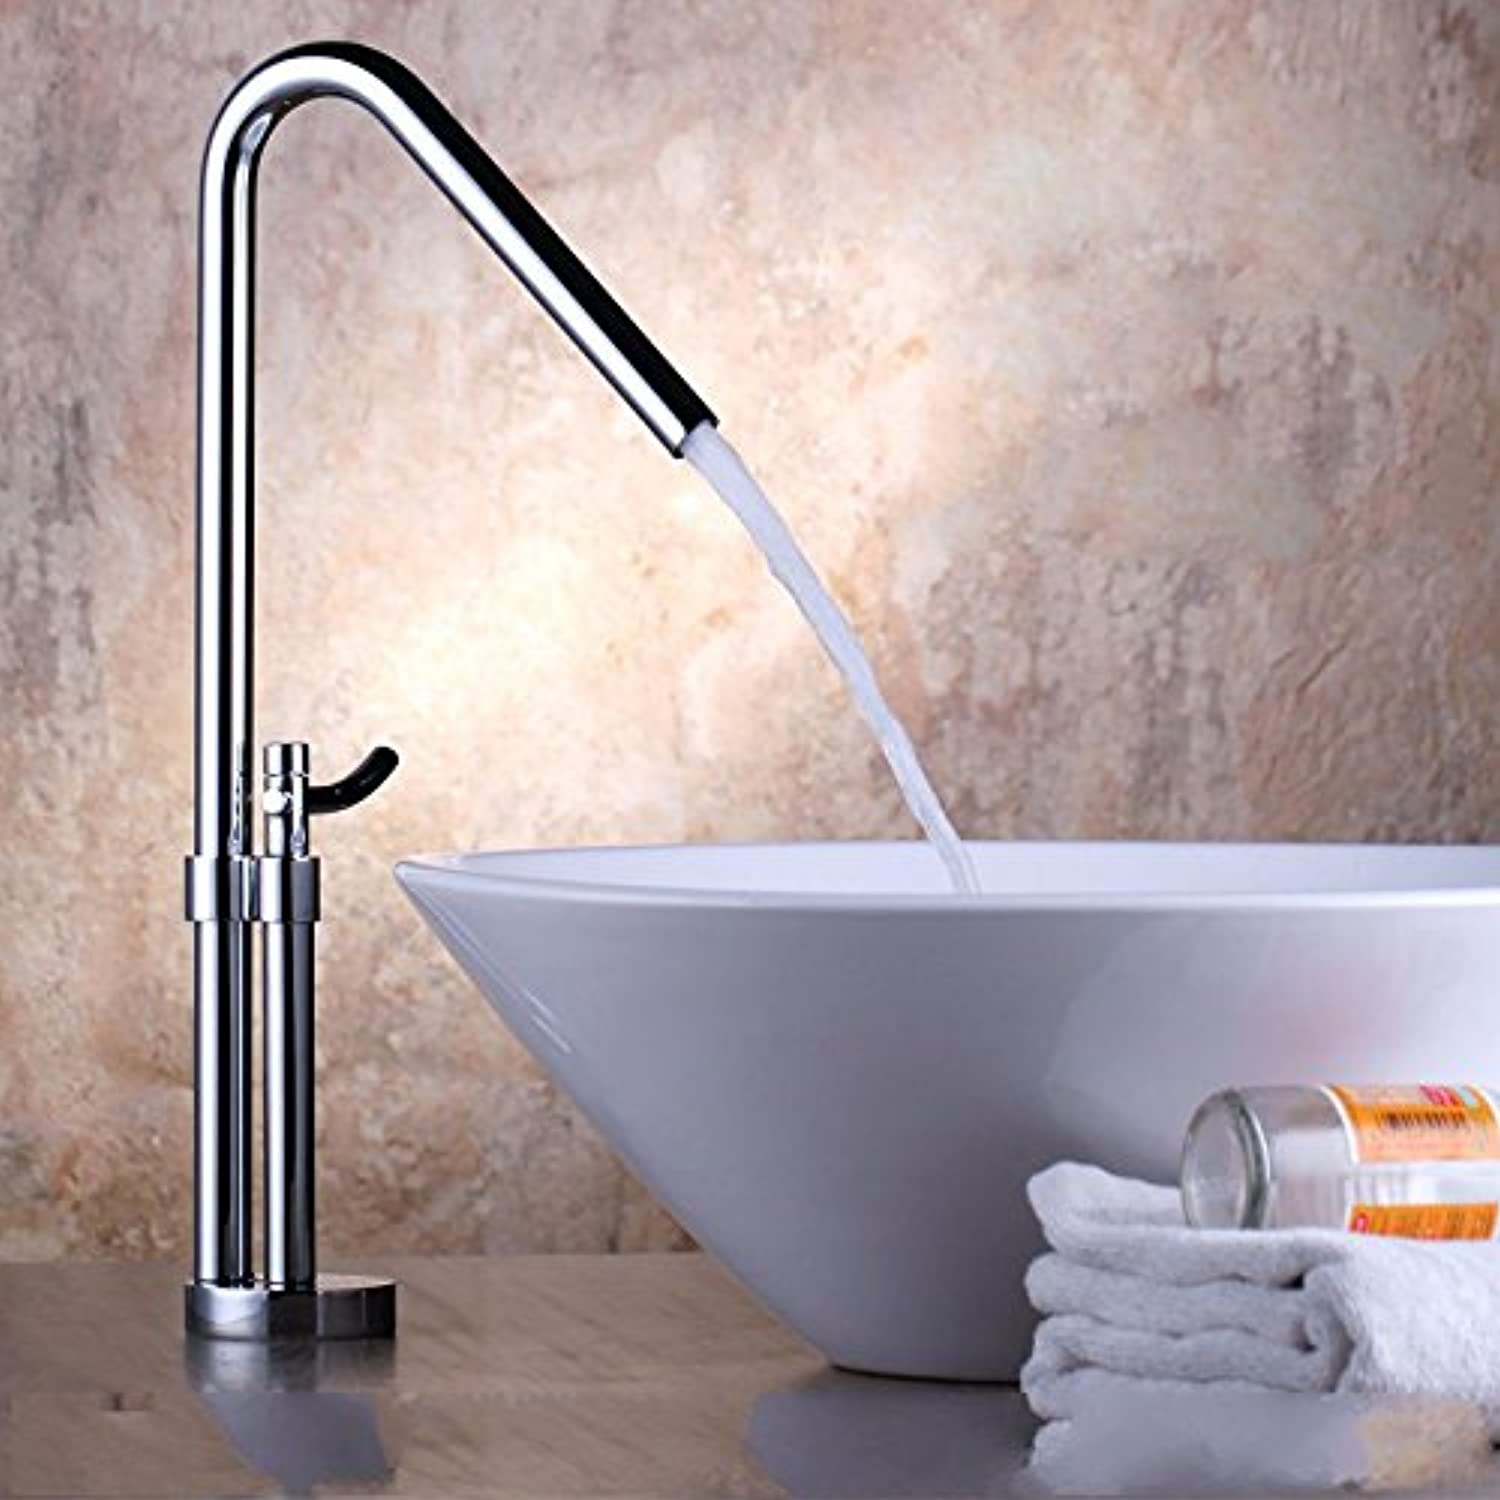 AQMMi Basin Taps Bathroom Sink Faucet Chrome Hot and Cold Water Single Lever Bathroom Sink Faucet Basin Mixer Tap